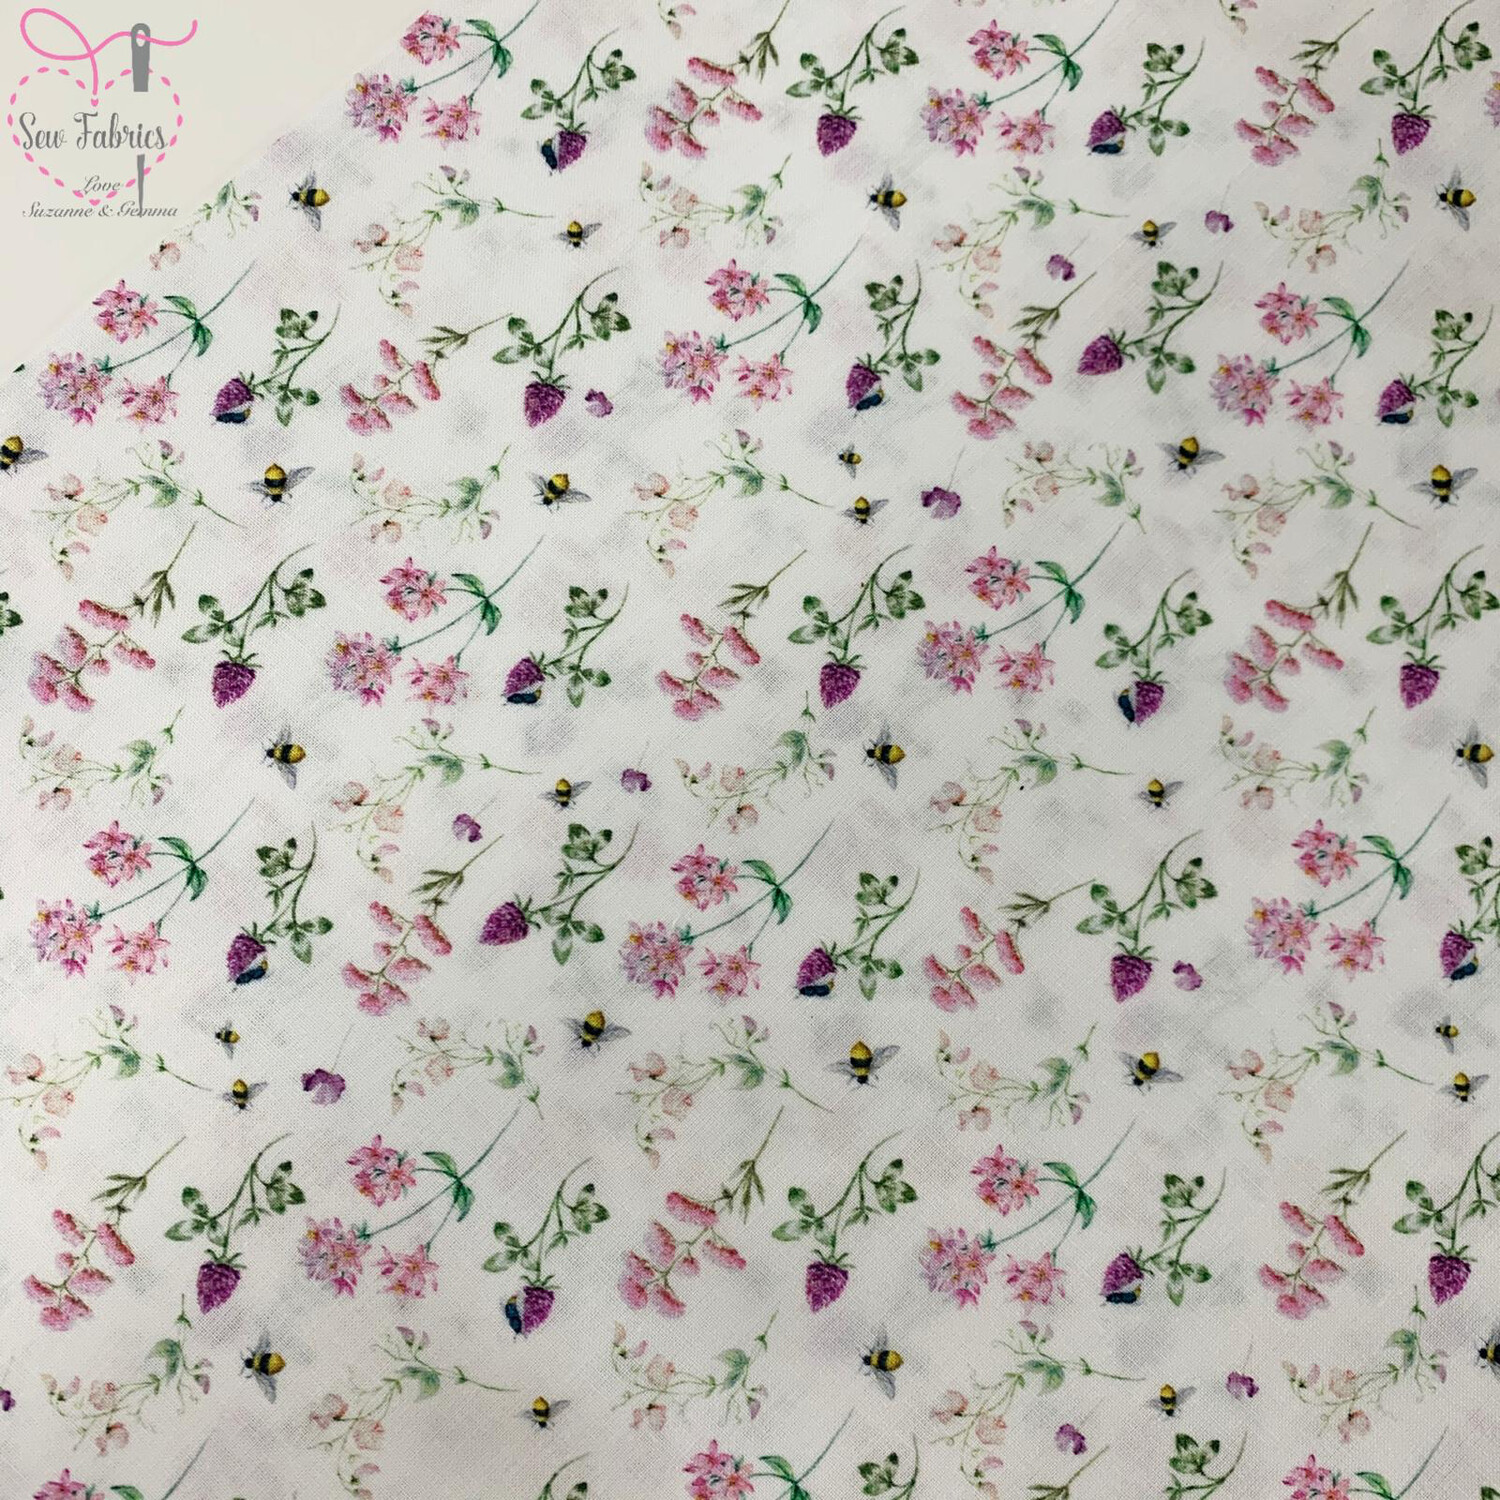 "Floral Bees Design, The Little Johnny Collection Summer Fabric 100% Cotton 58"" Wide Width"